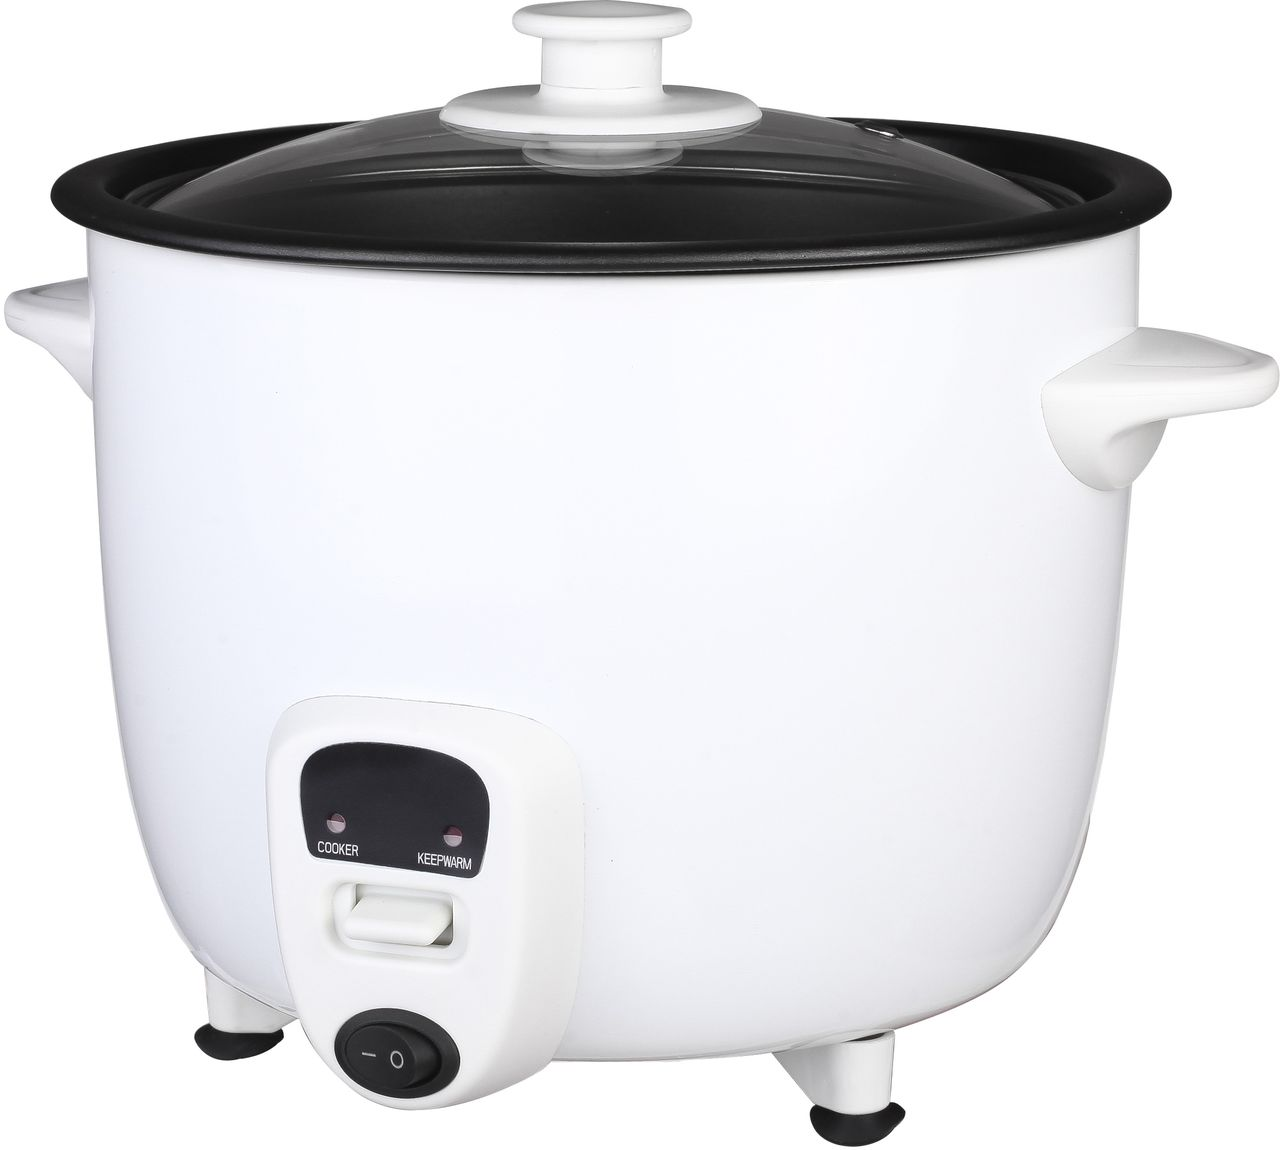 home max rice cooker instructions